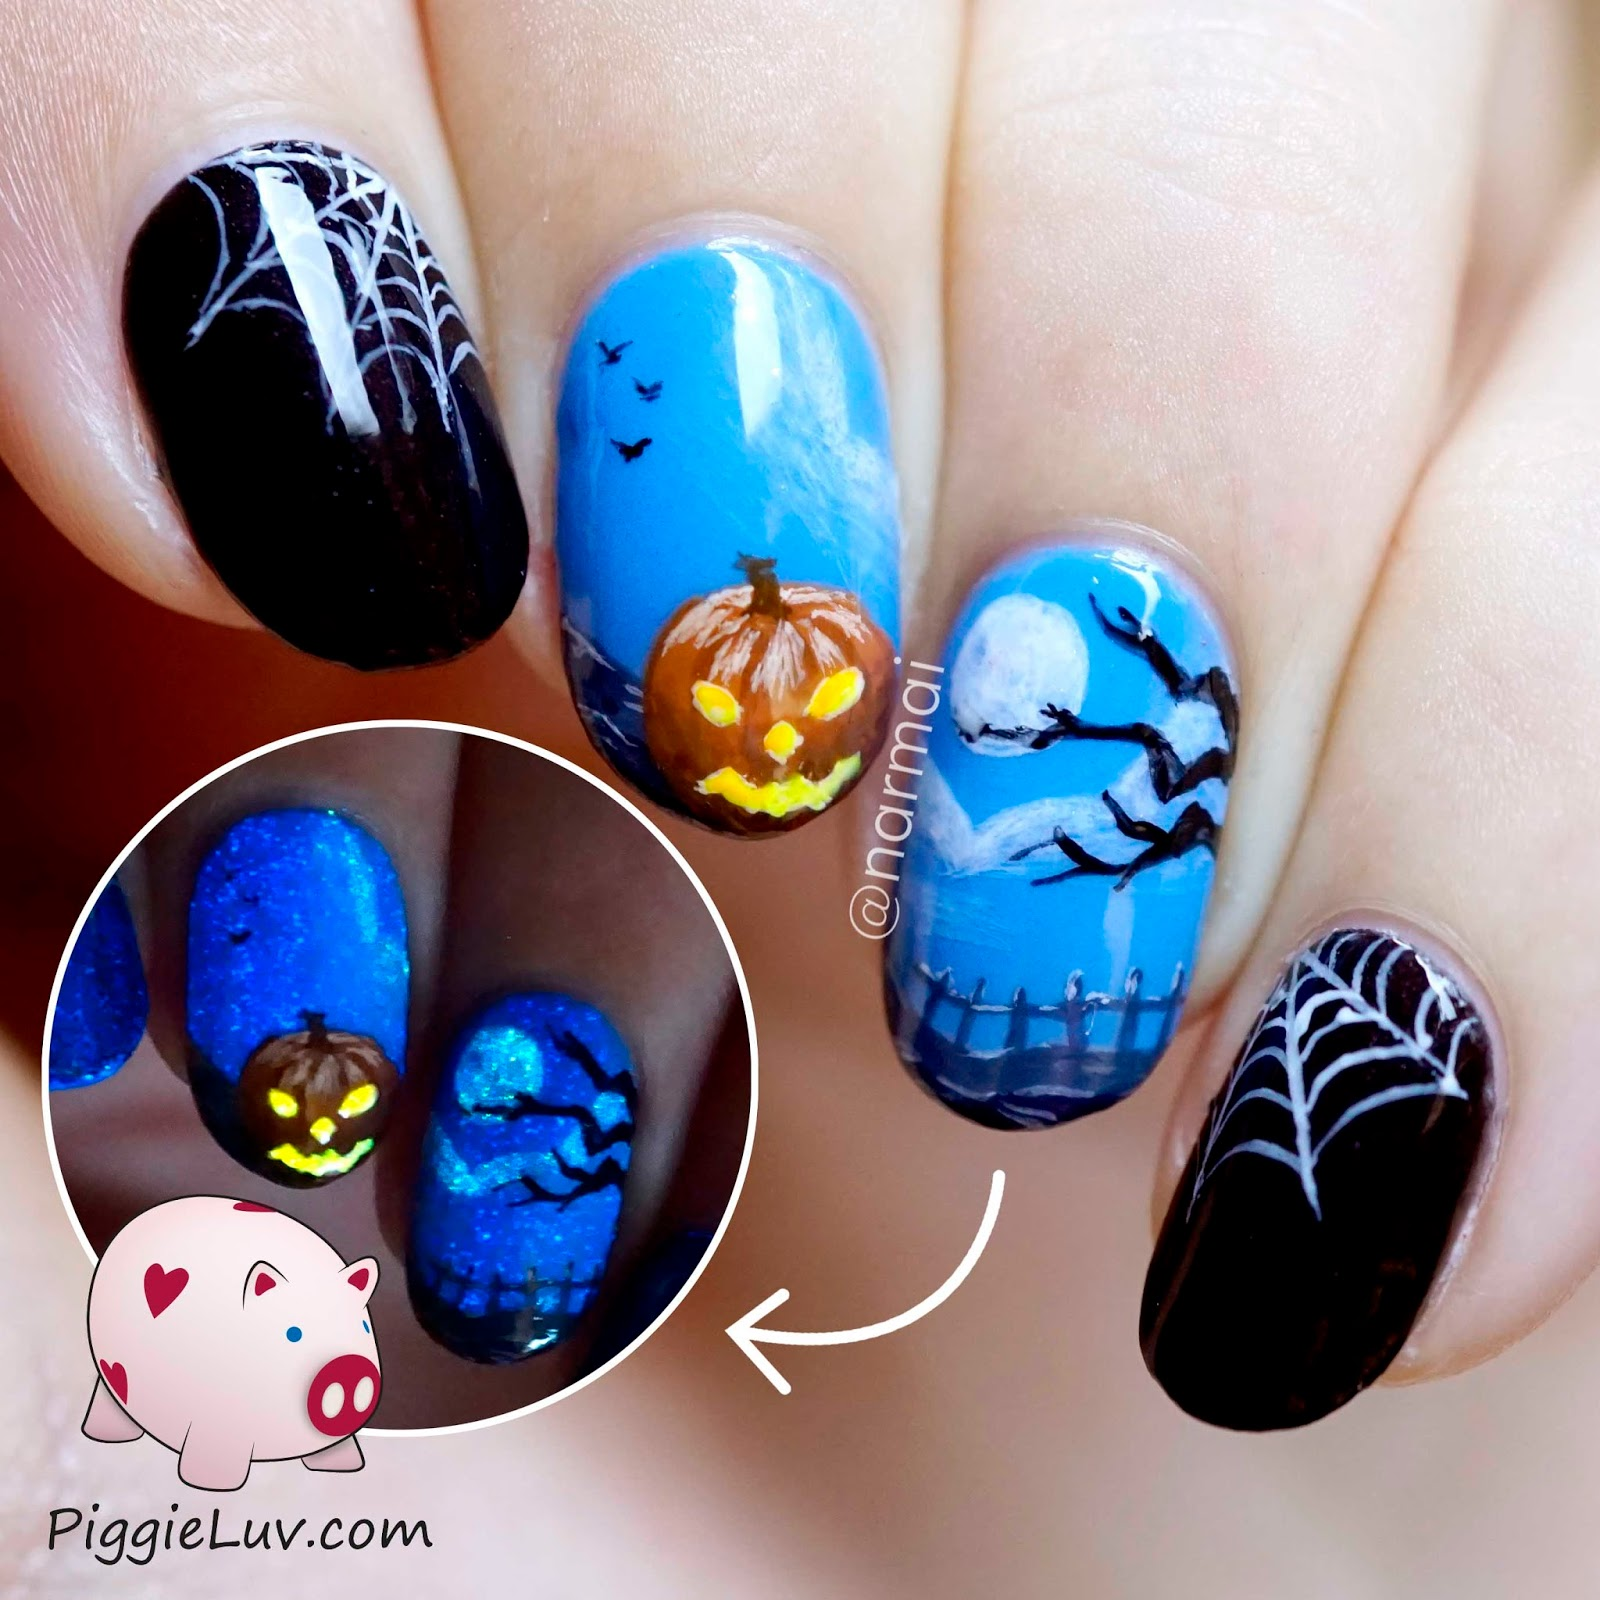 Piggieluv happy halloween nail art hpb linkup jack o lanterns are such wimps they have no guts my nail art design is completely inspired by just nail it peru who has mad freehand skills prinsesfo Gallery